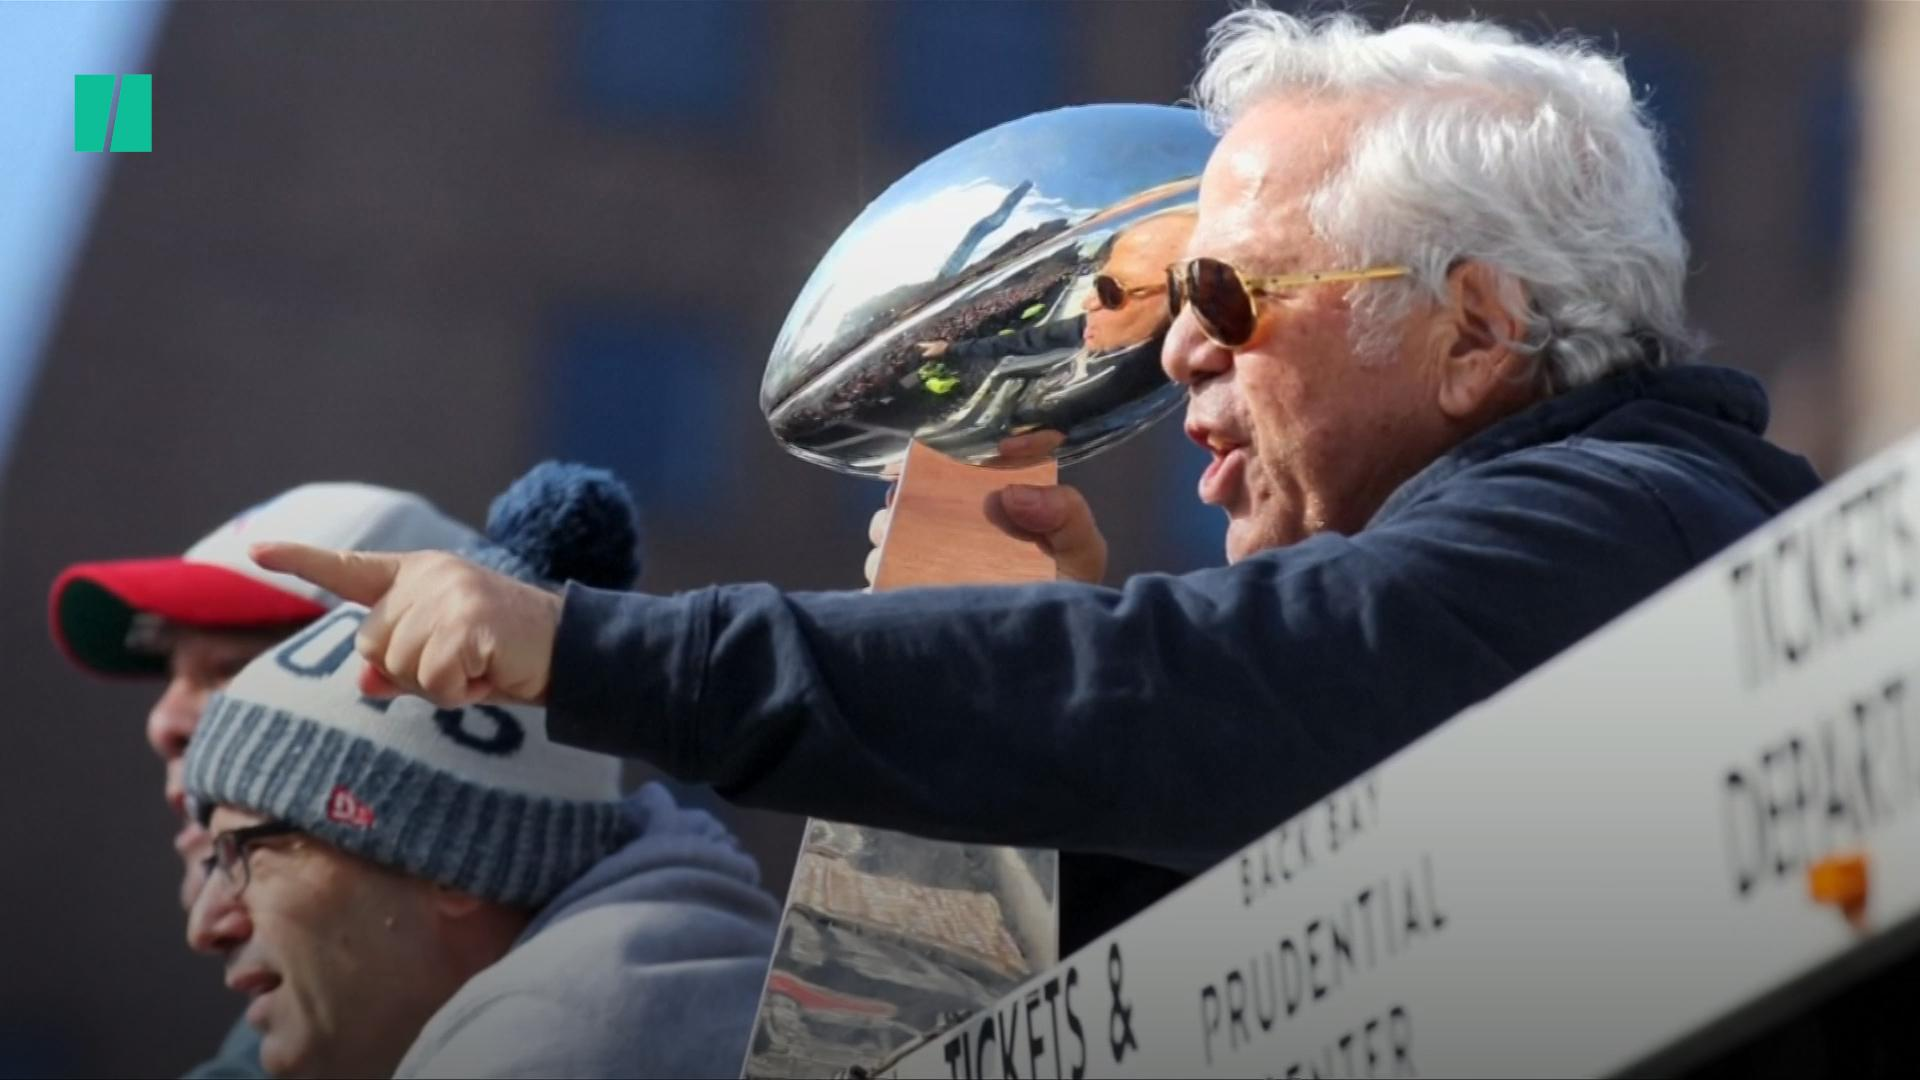 Robert Kraft's Arrest Is About Way More Than Just Him